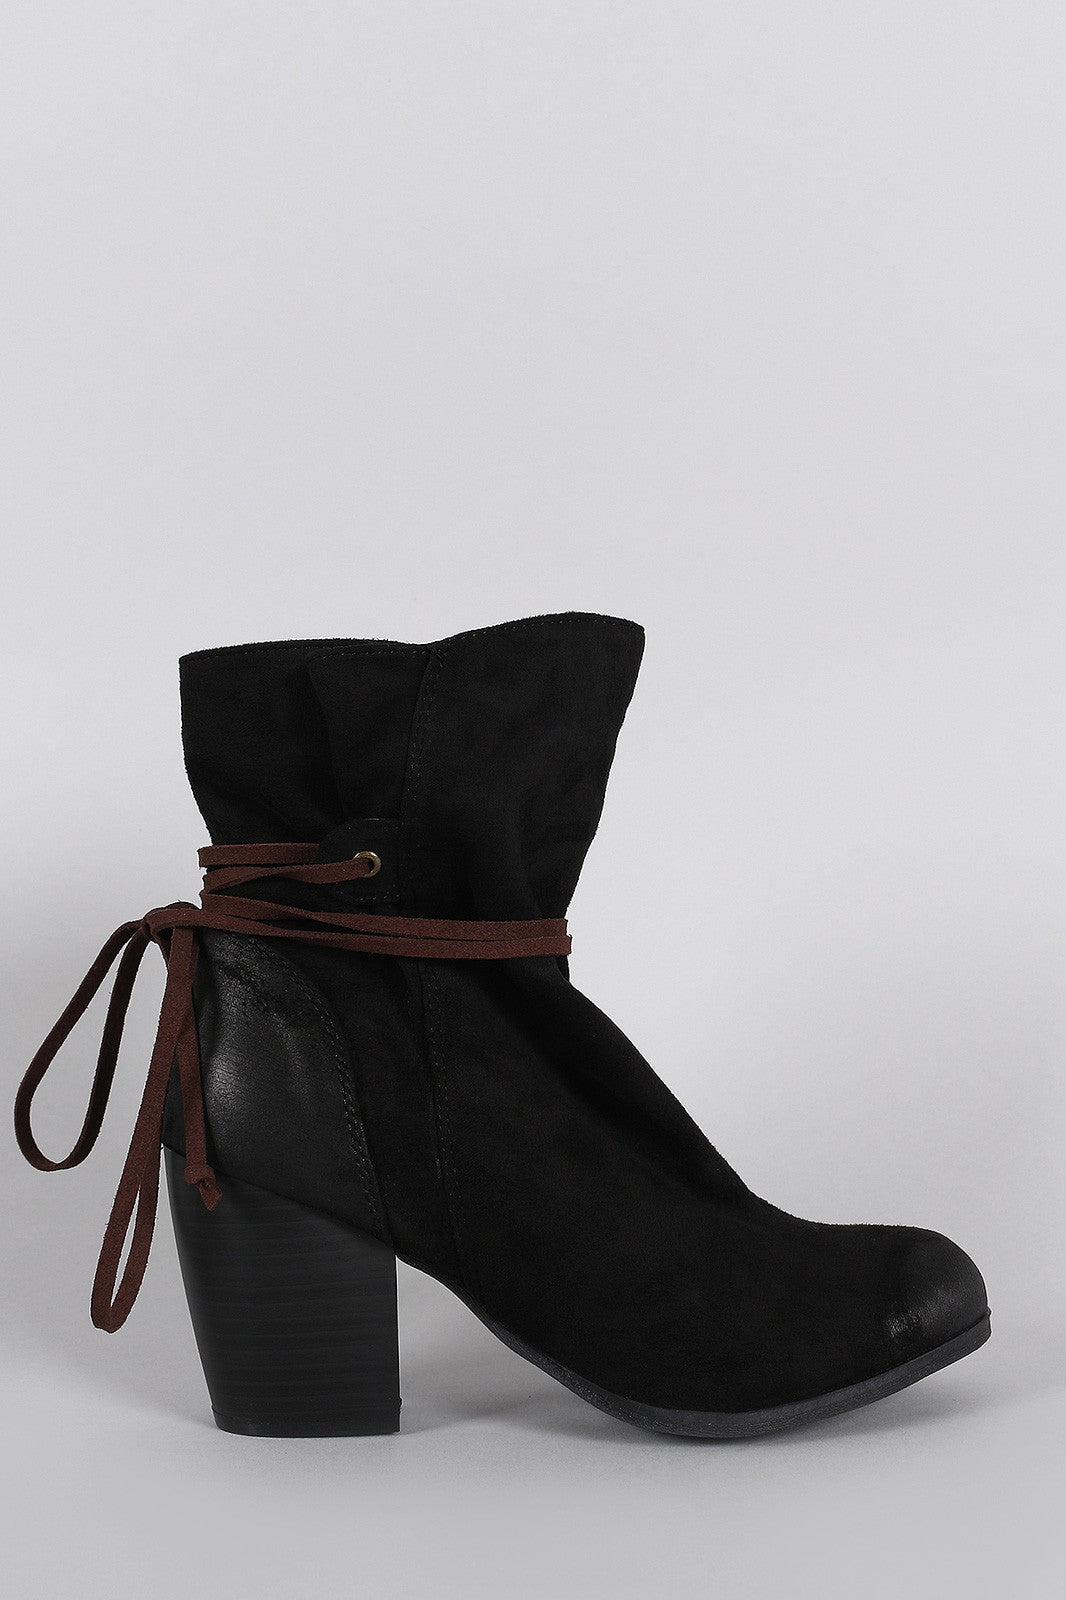 Qupid Suede Lace Tie Chunky Heeled Ankle Boots - Thick 'N' Curvy Shop - 1